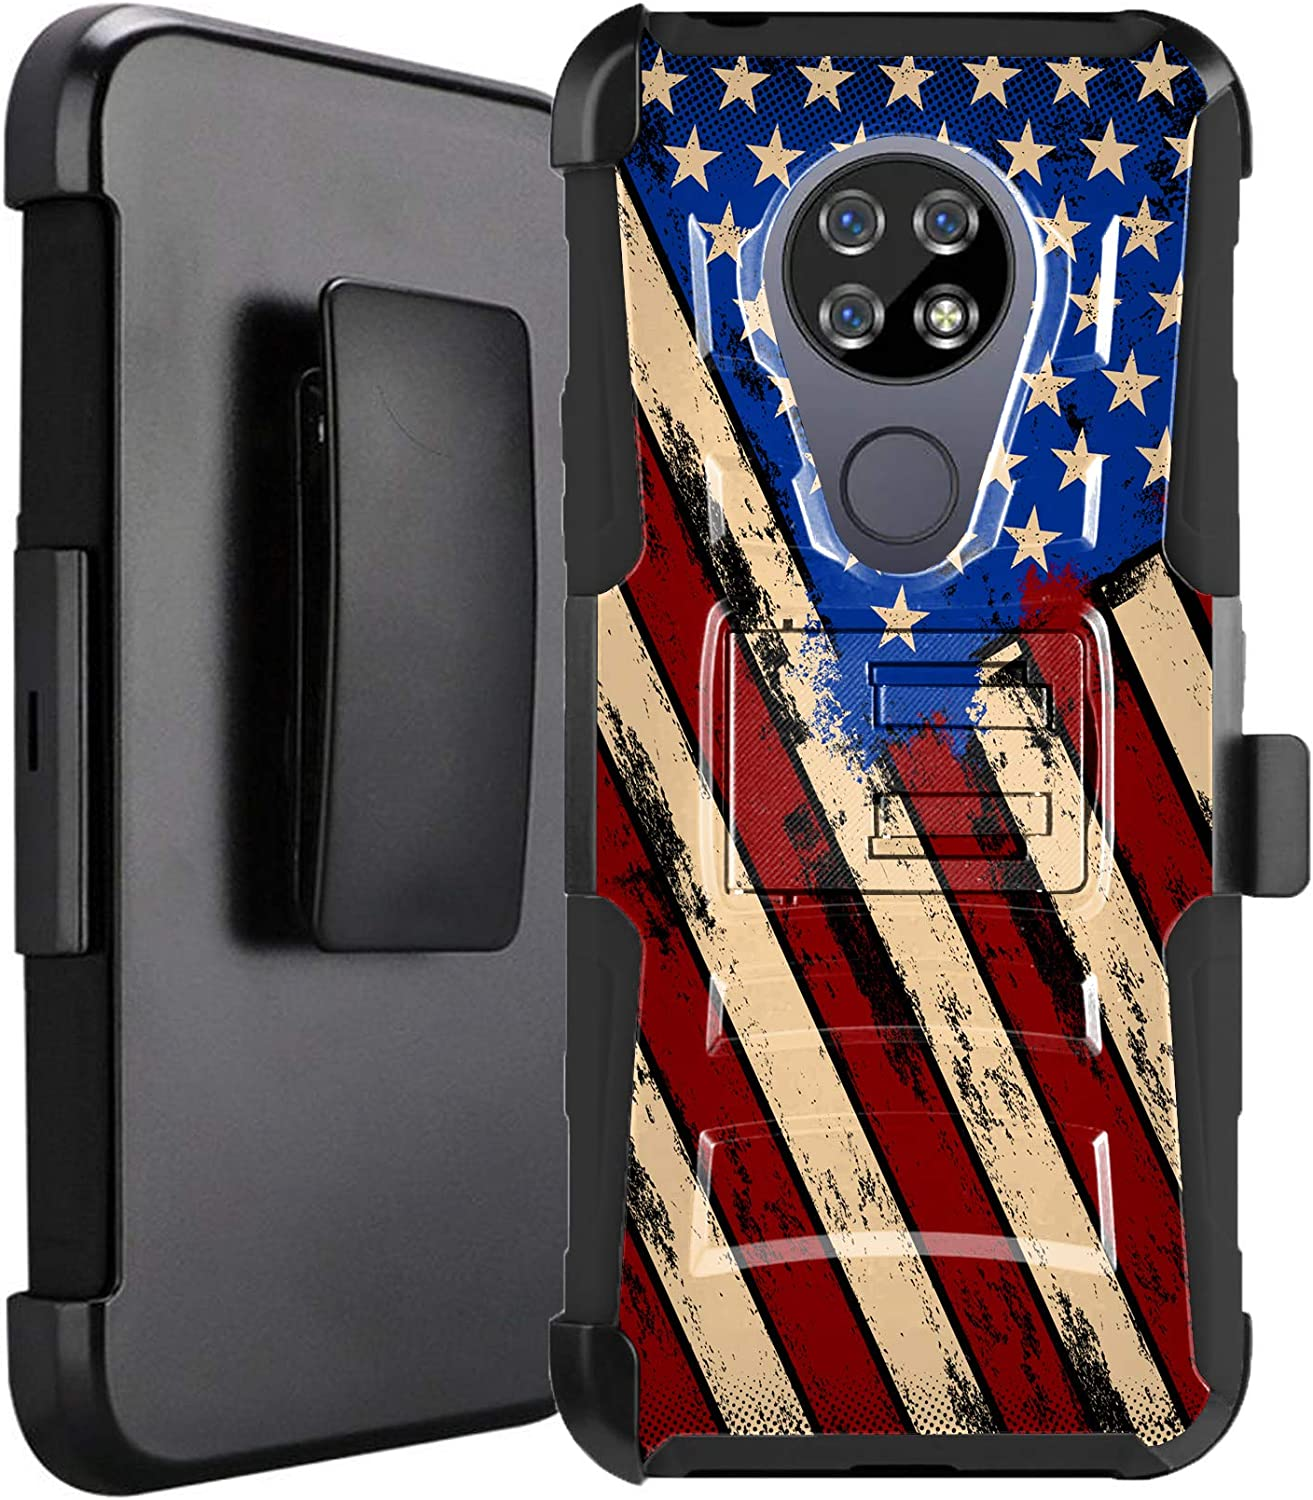 DALUX Hybrid Kickstand Holster Phone Case Compatible with Cricket Ovation/AT&T Radiant Max 4G LTE (2020) - Graffiti US Flag Print